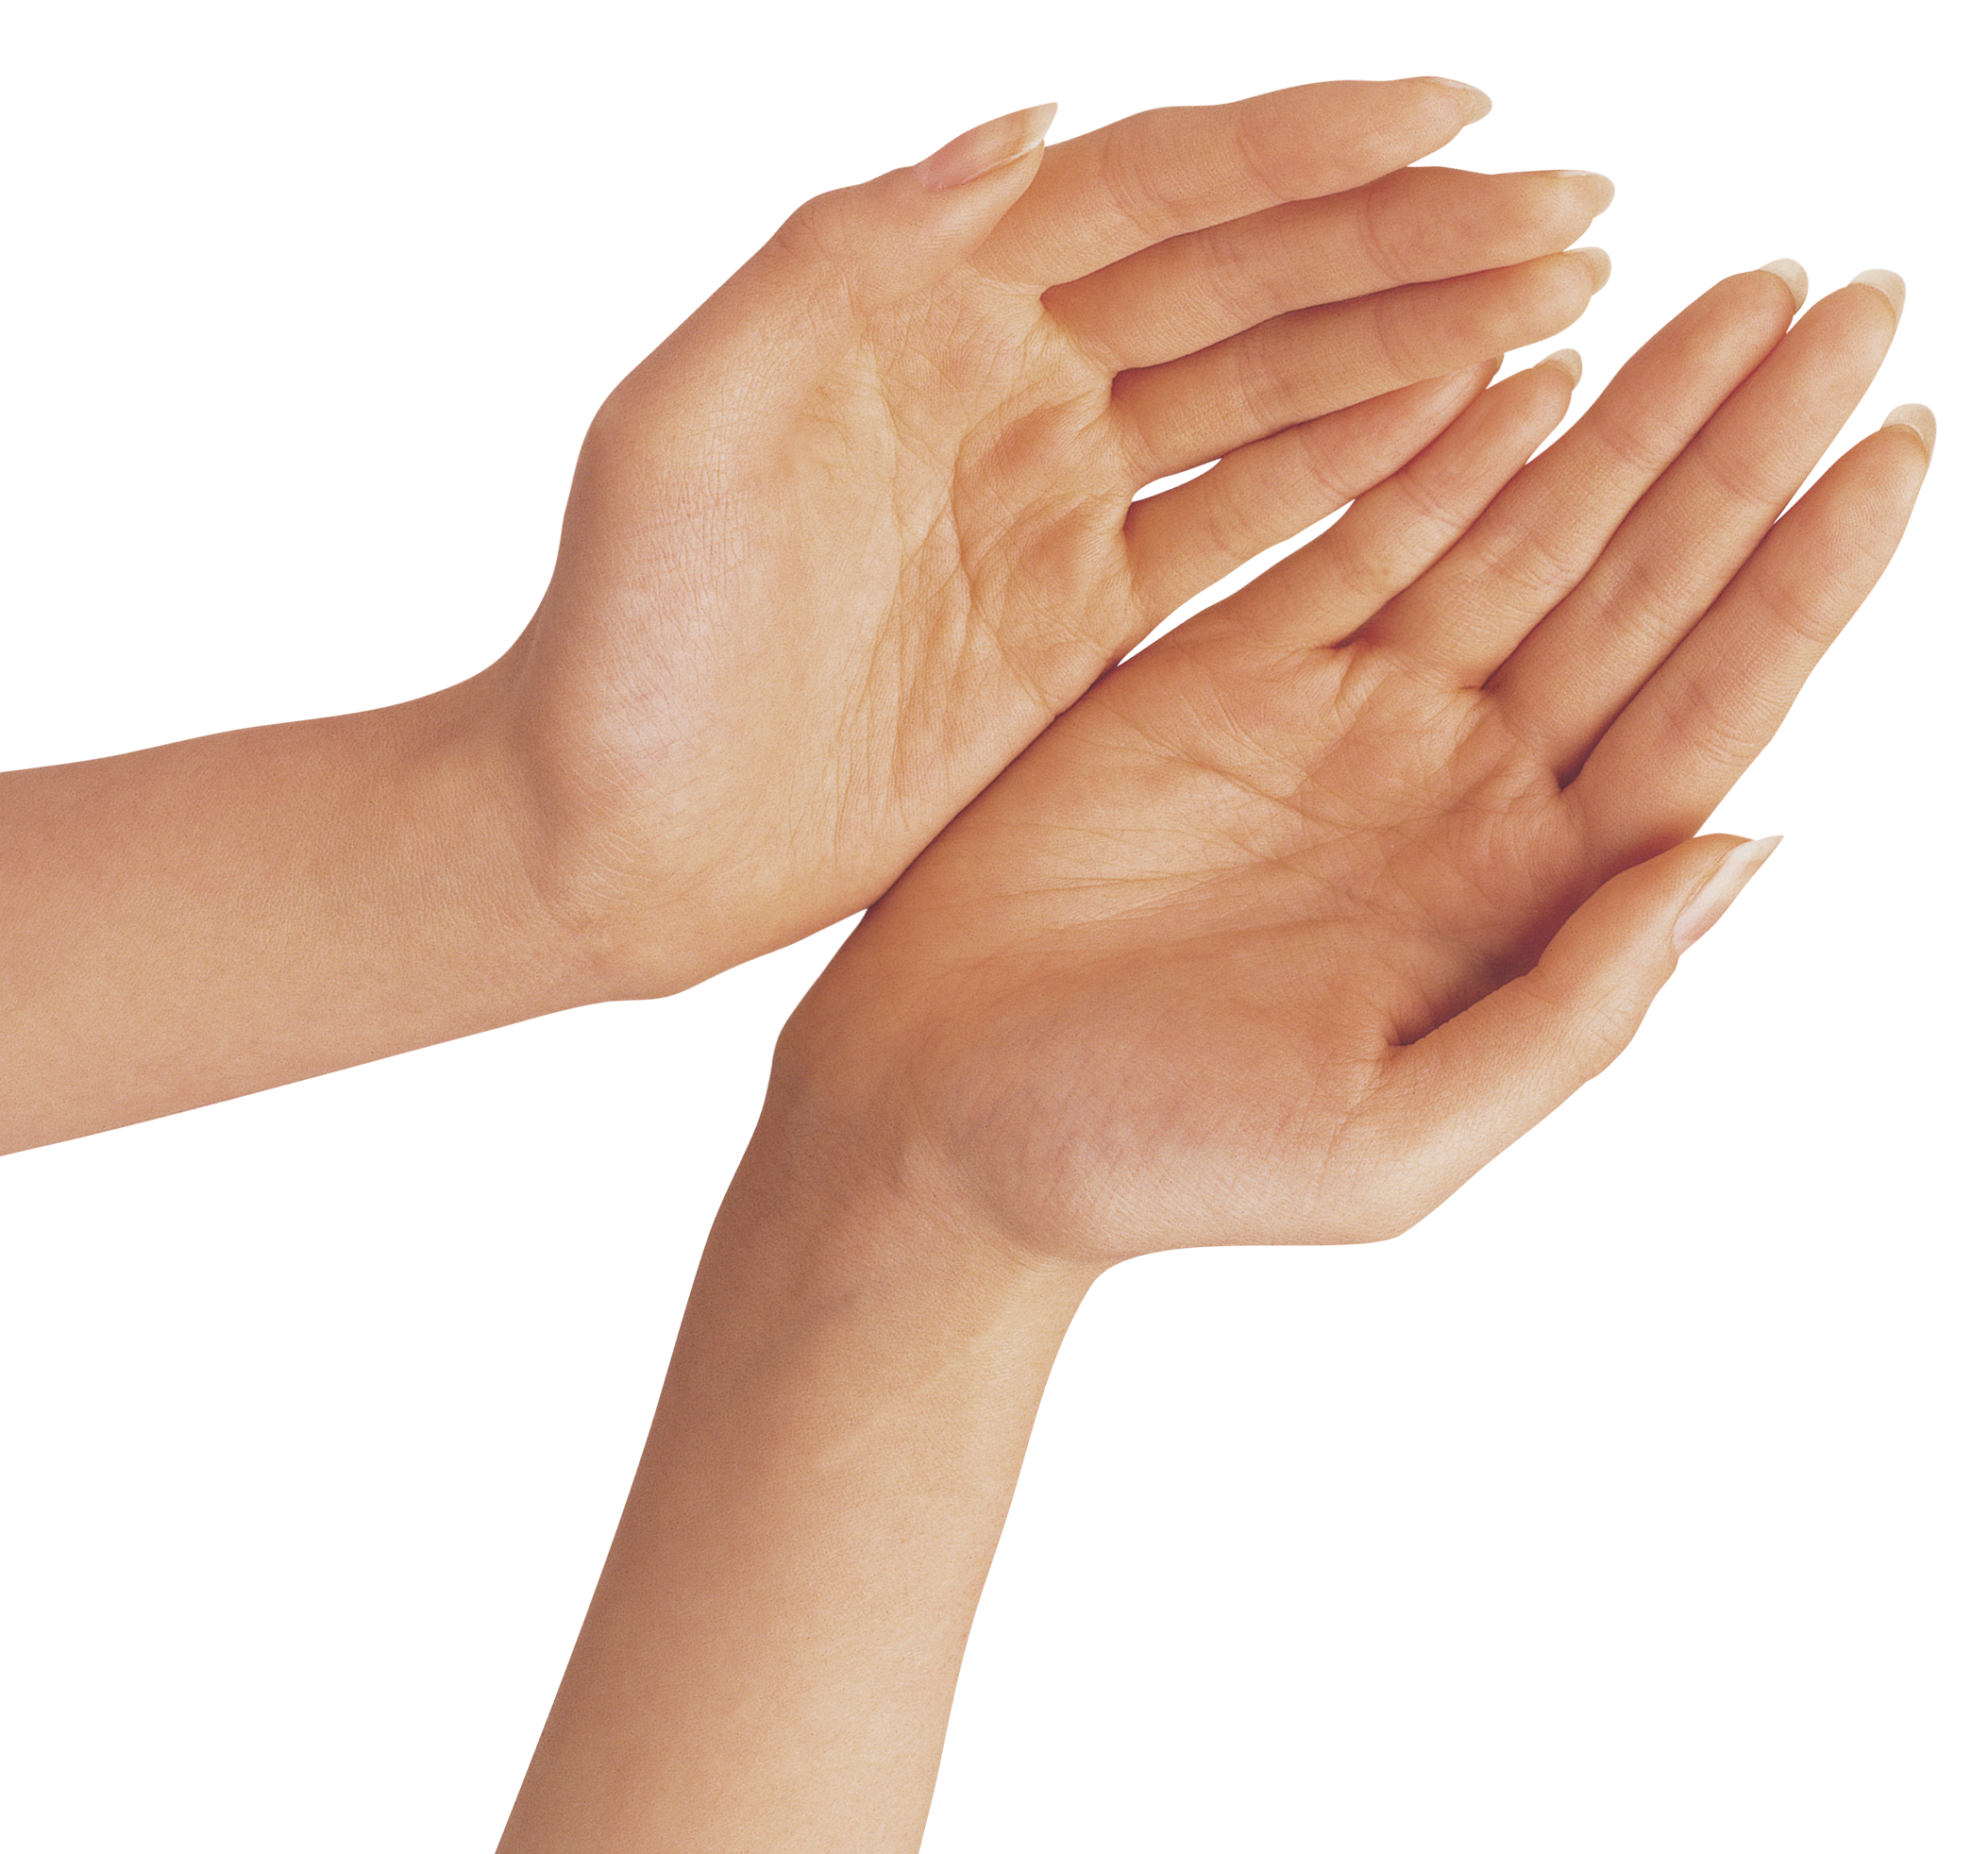 Two hands png image. Race clipart skin